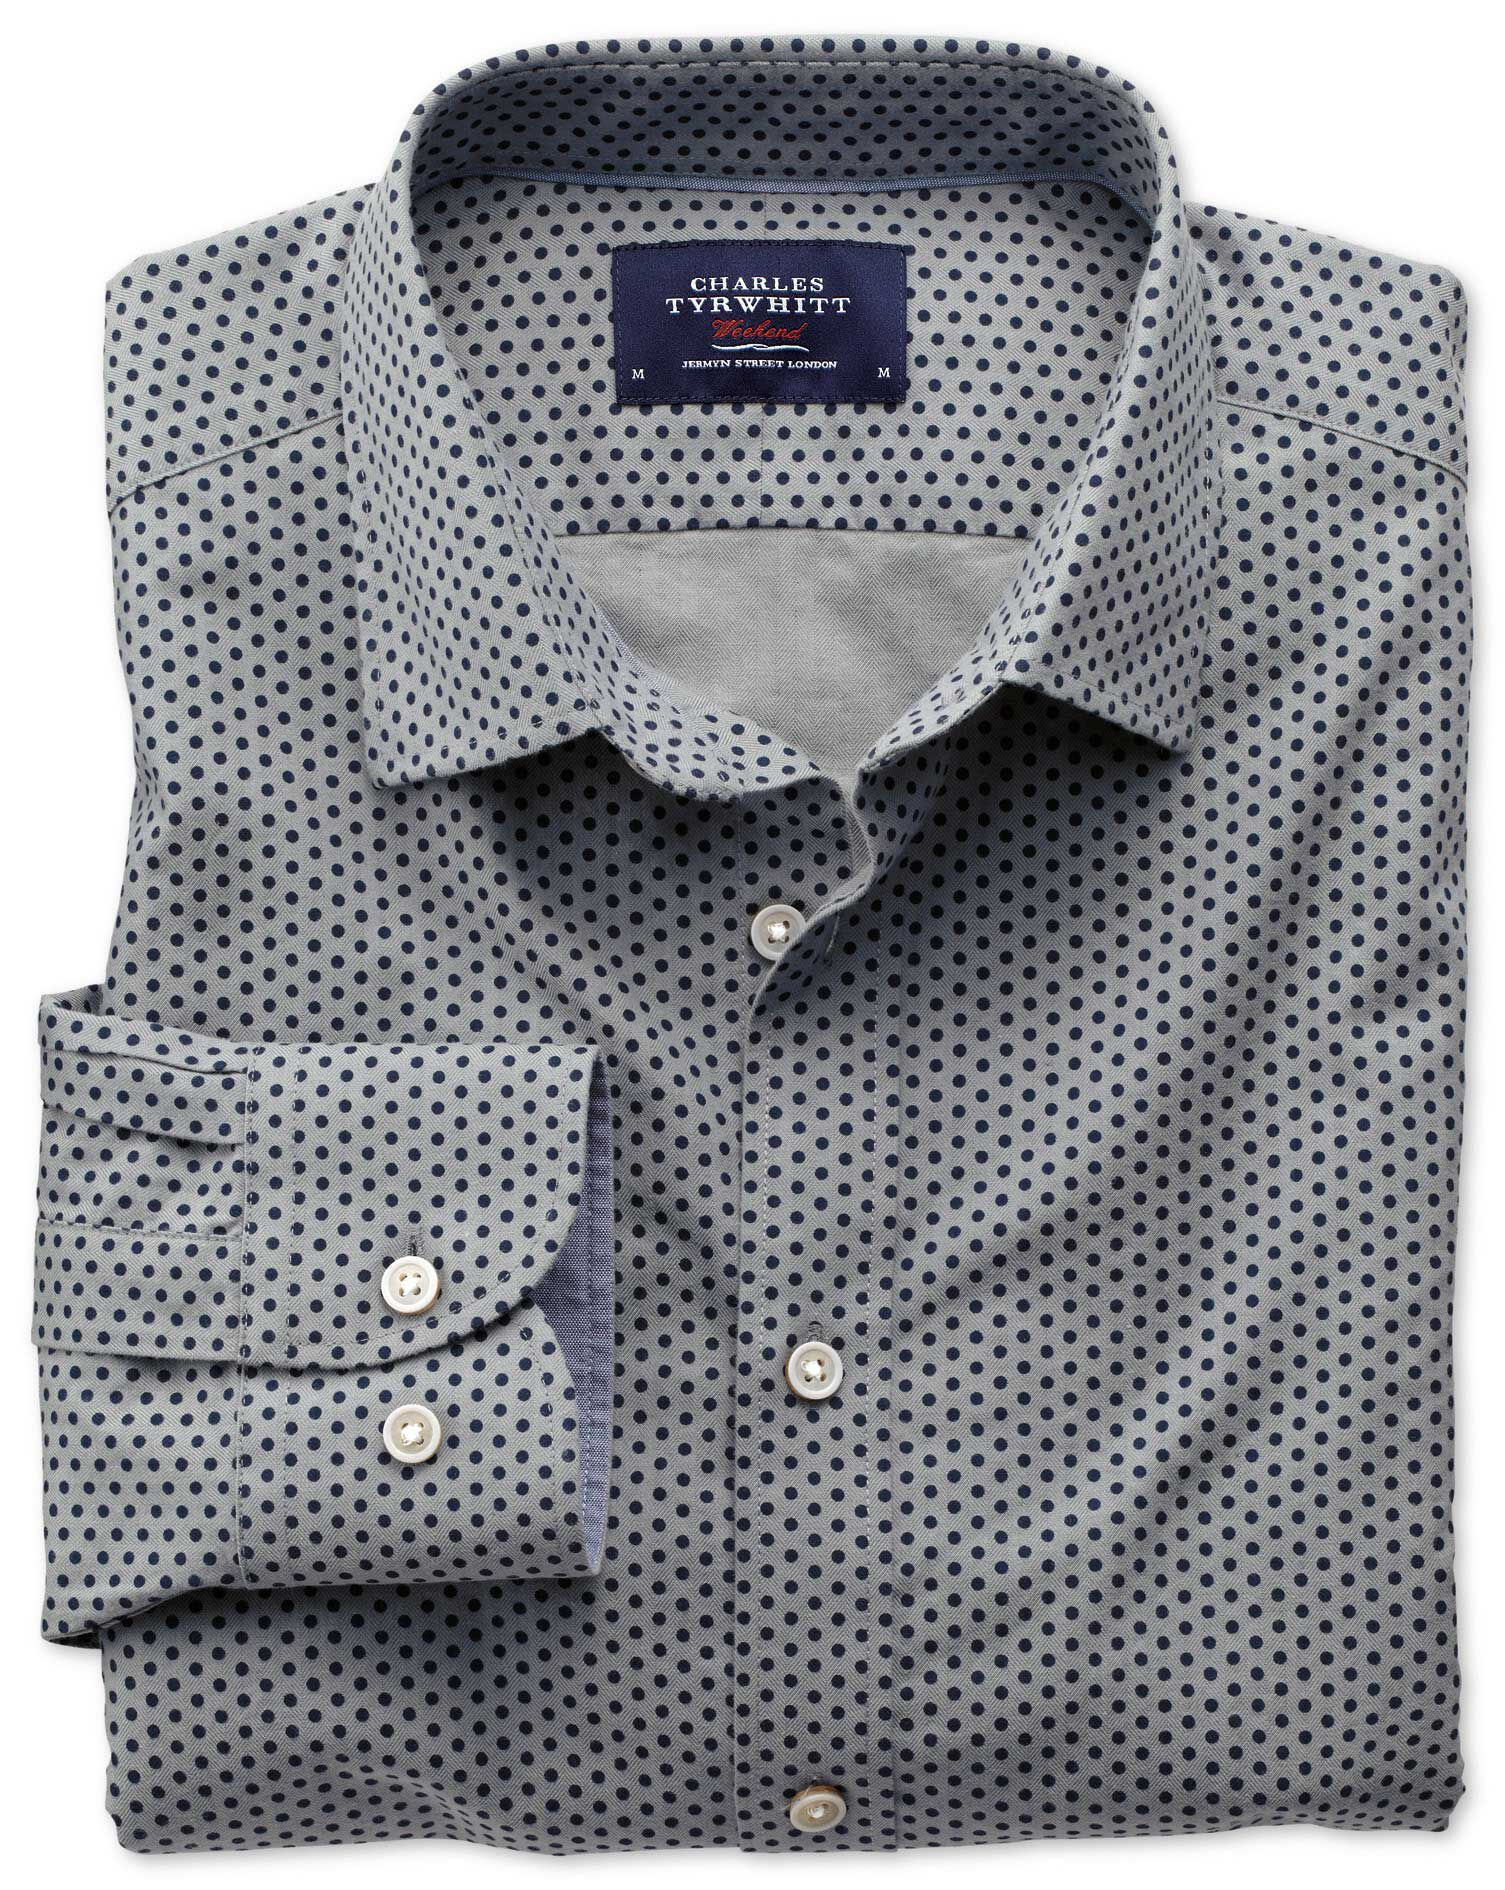 Slim Fit Navy and Grey Spot Print Cotton Shirt Single Cuff Size XS by Charles Tyrwhitt